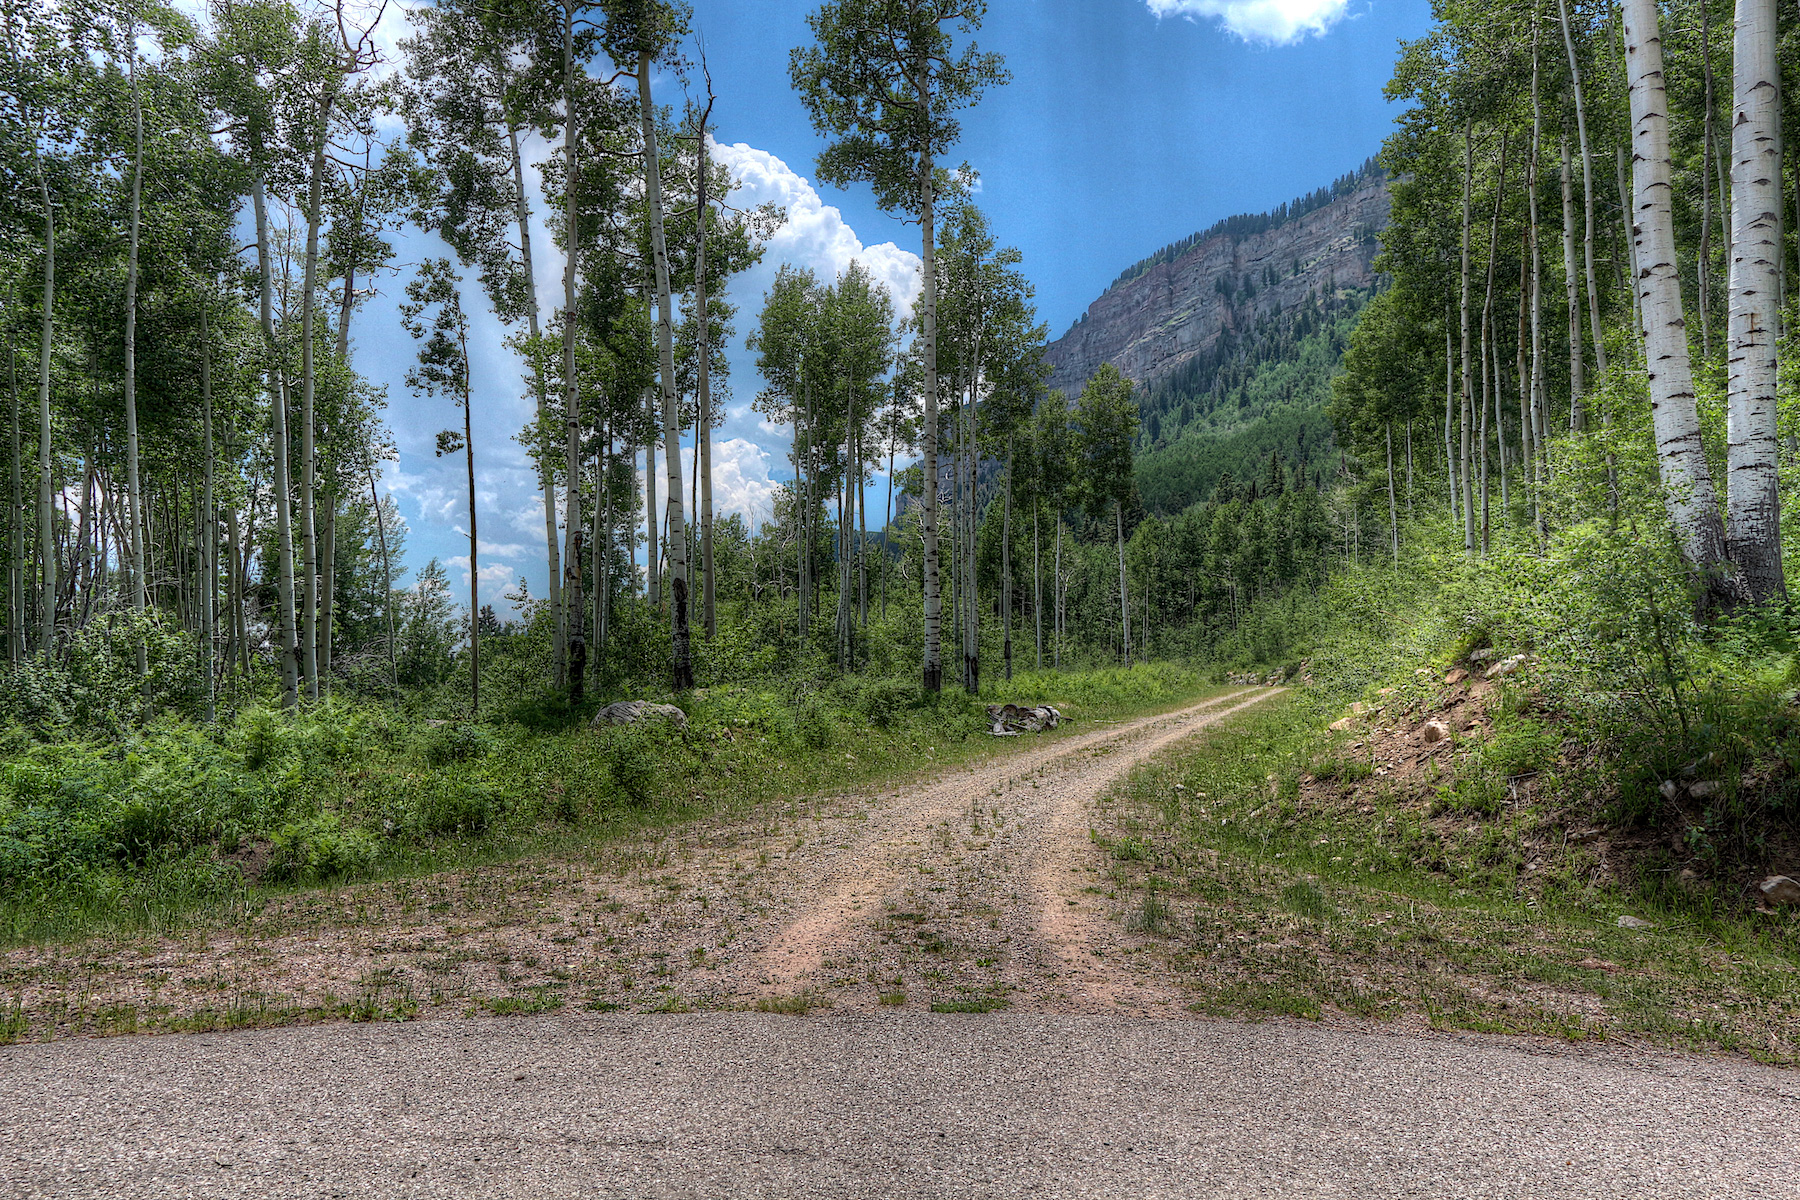 Additional photo for property listing at 311 Wilshire Drive 311 Wilshire Drive Durango, Colorado 81301 United States